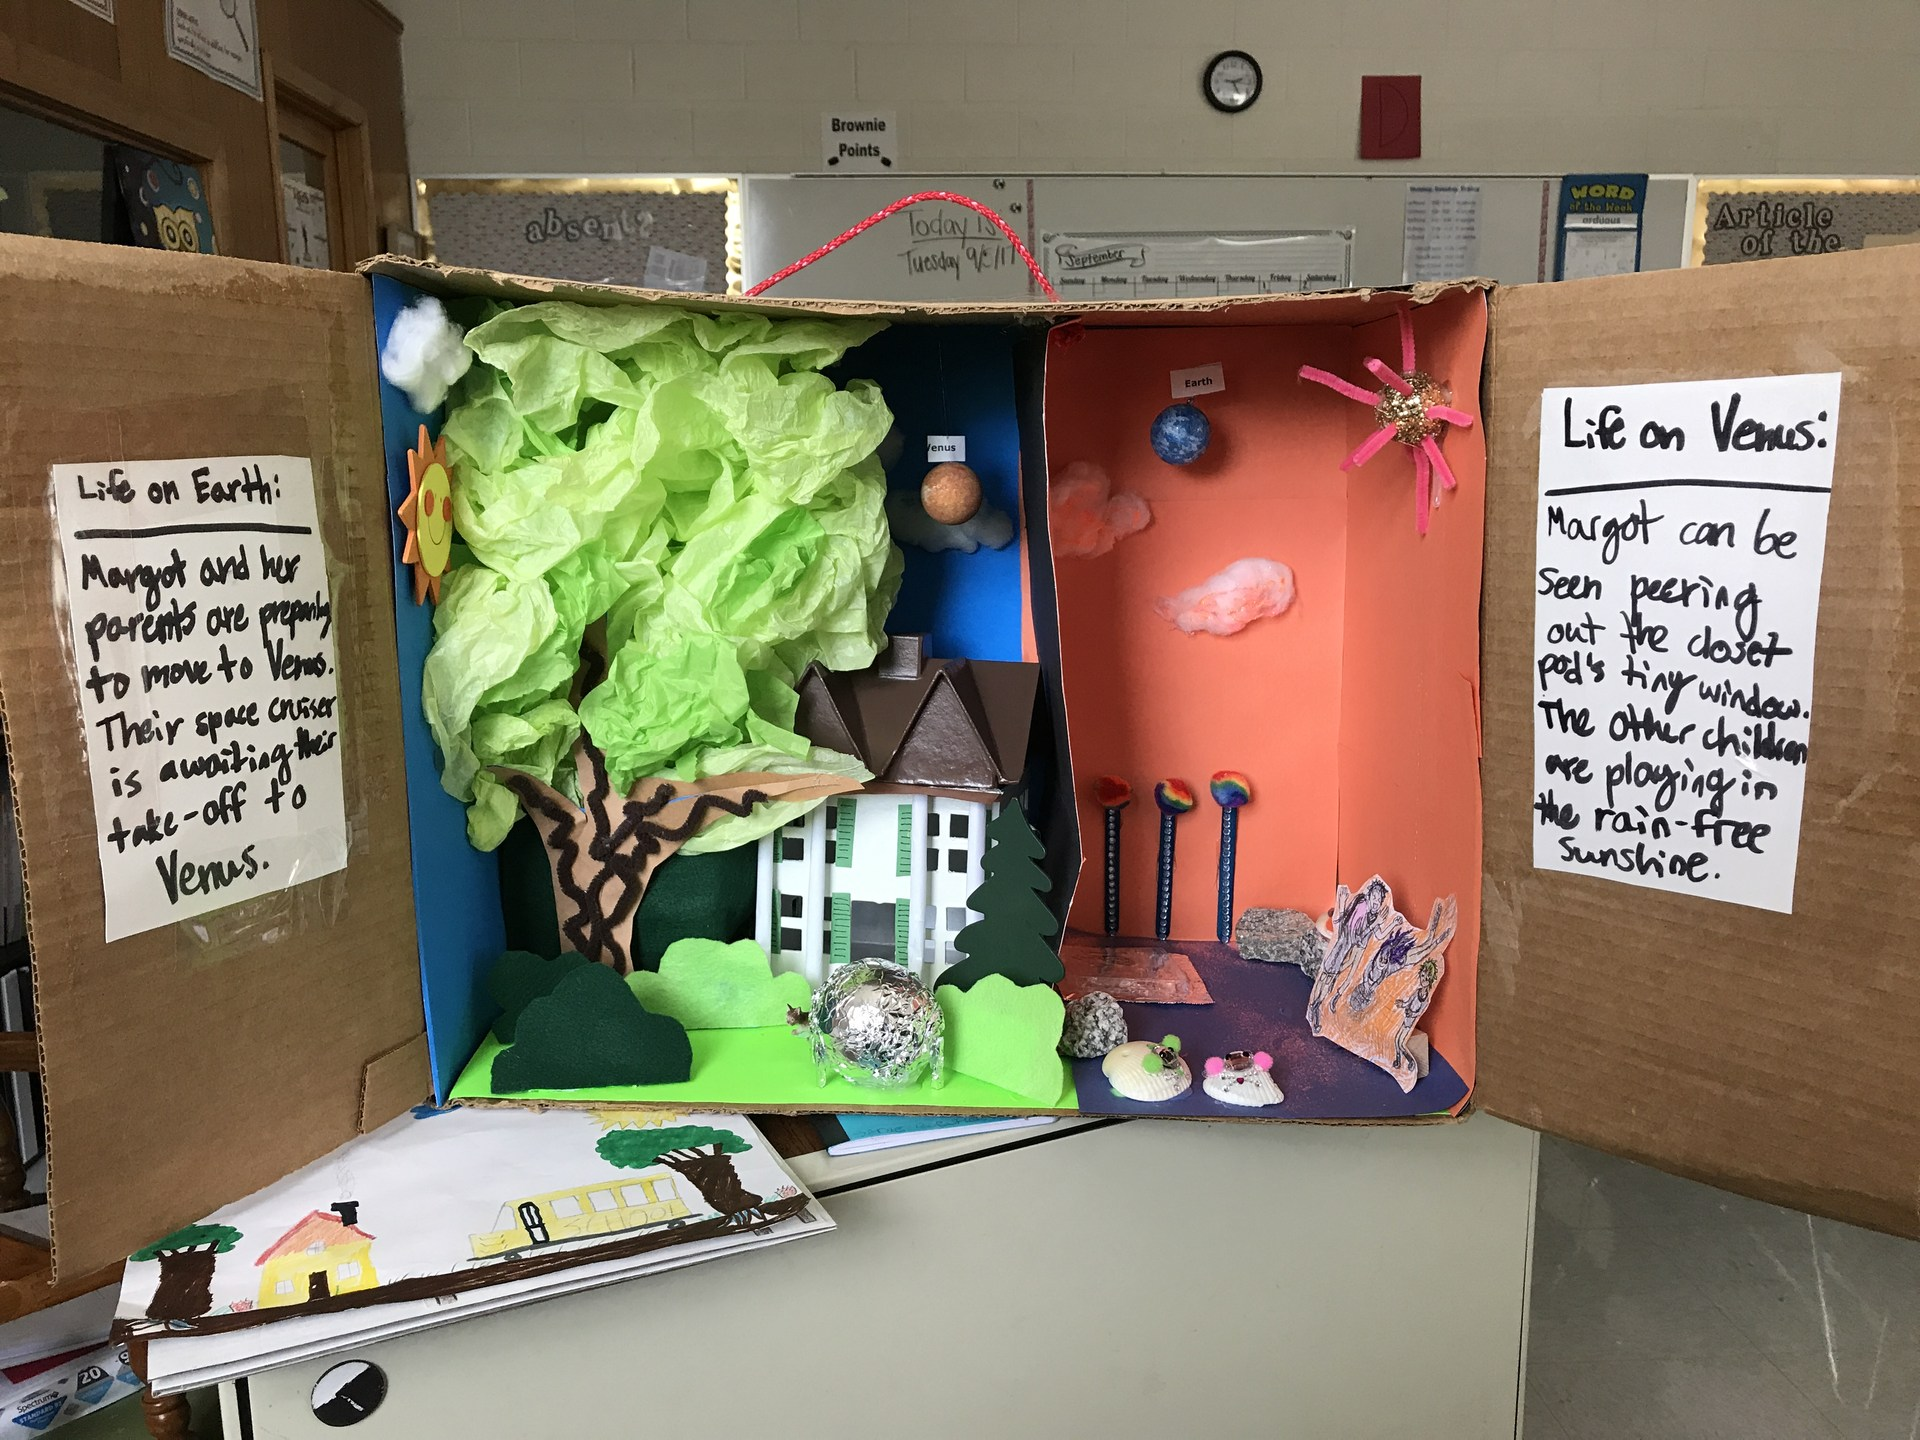 Lily's diorama explains how Margot's worlds changed